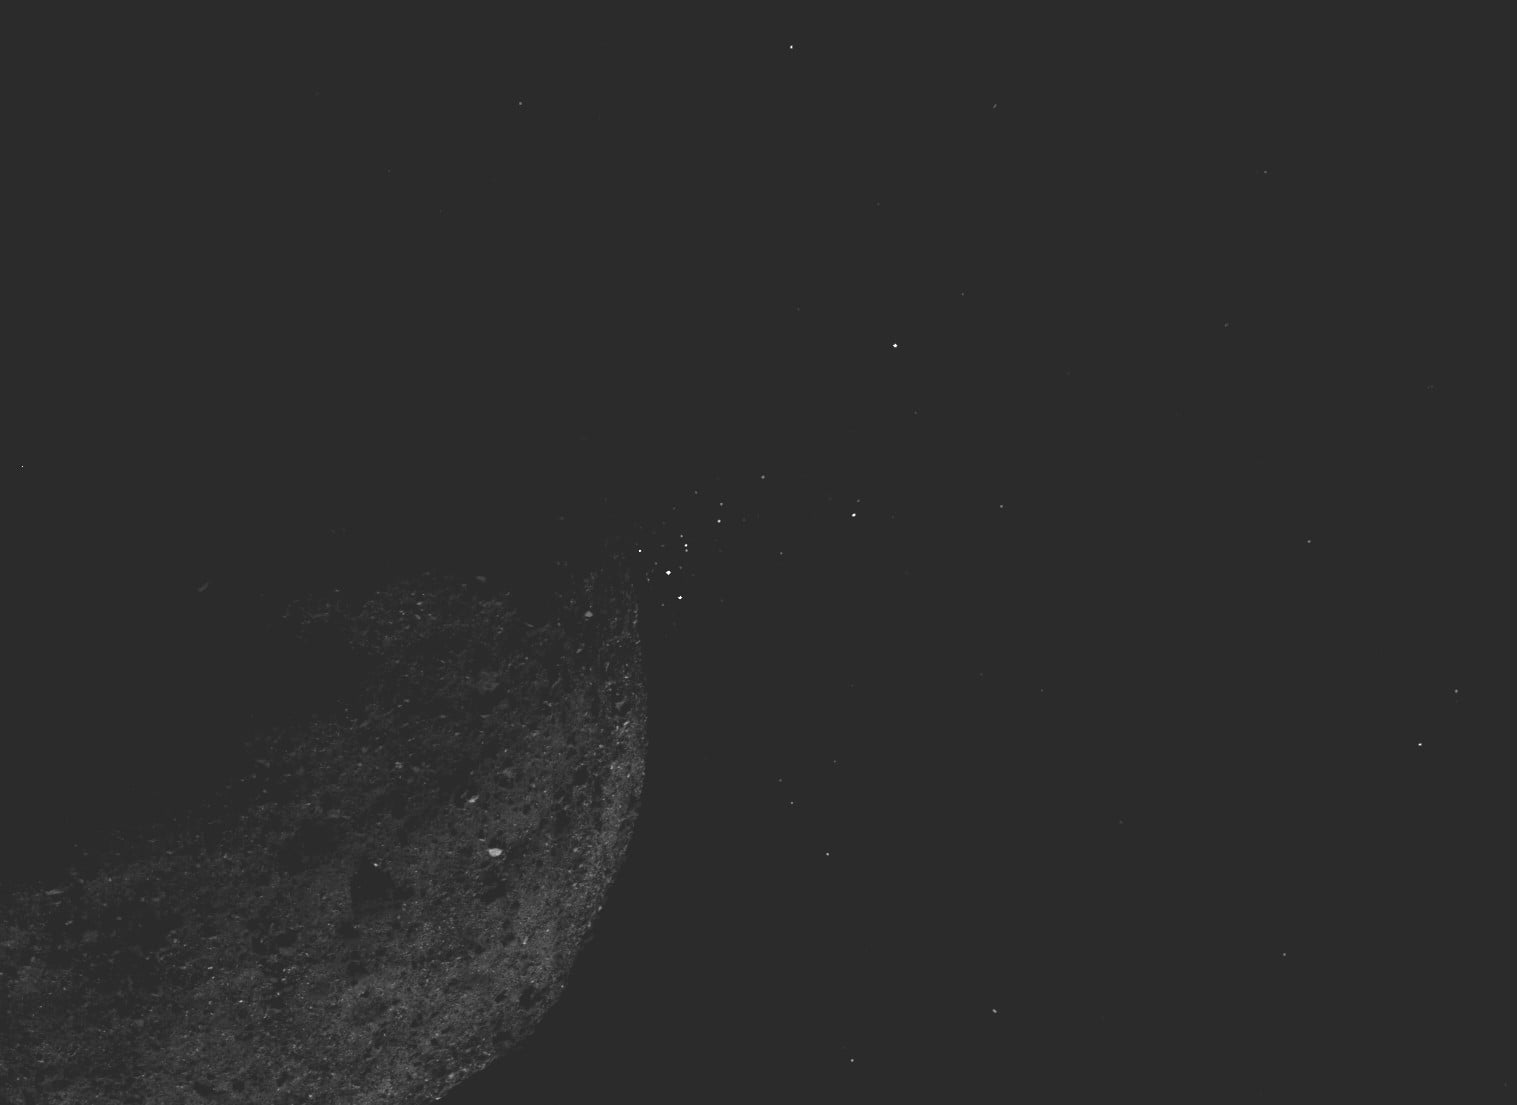 Unexpected particle plumes discovered jetting out of asteroid Bennu